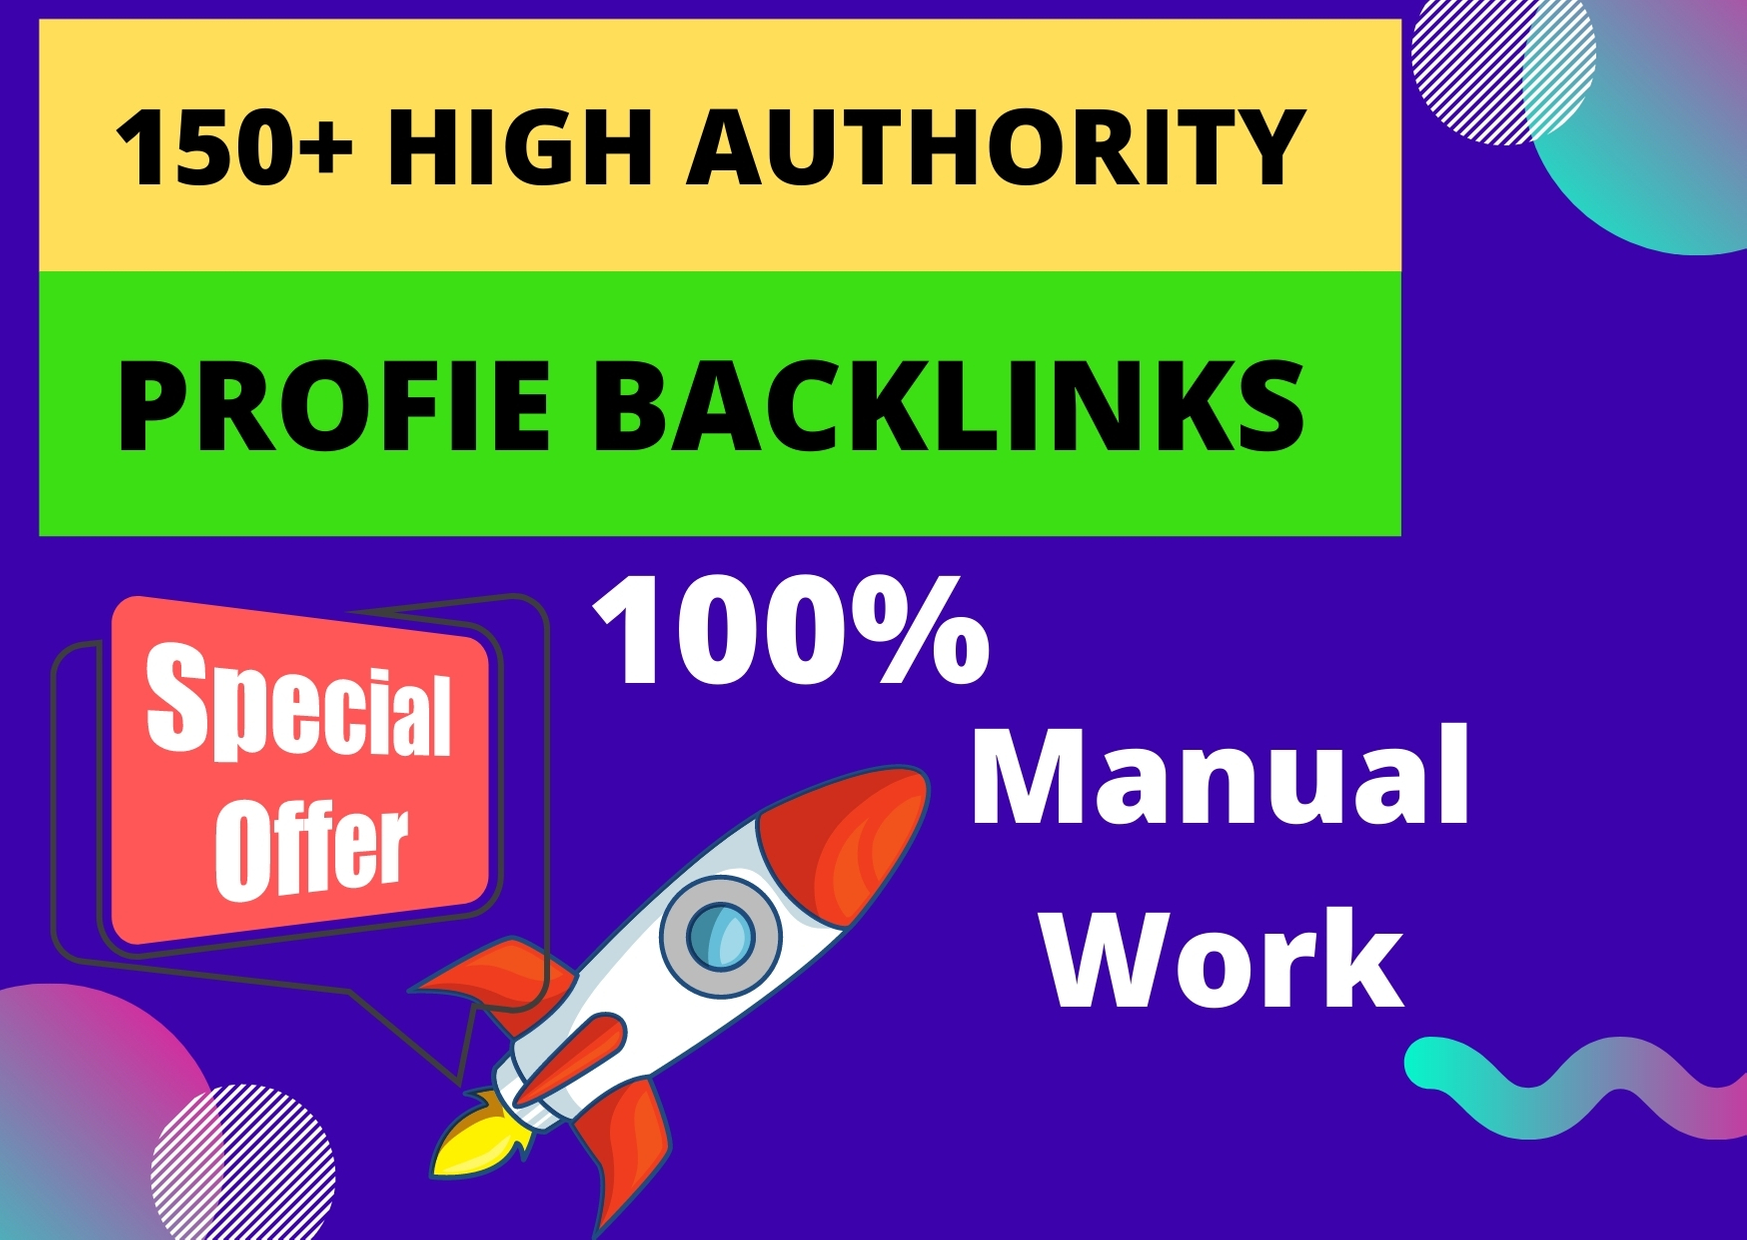 I will do 150+ high authority profile backlinks manually for SEO ranking